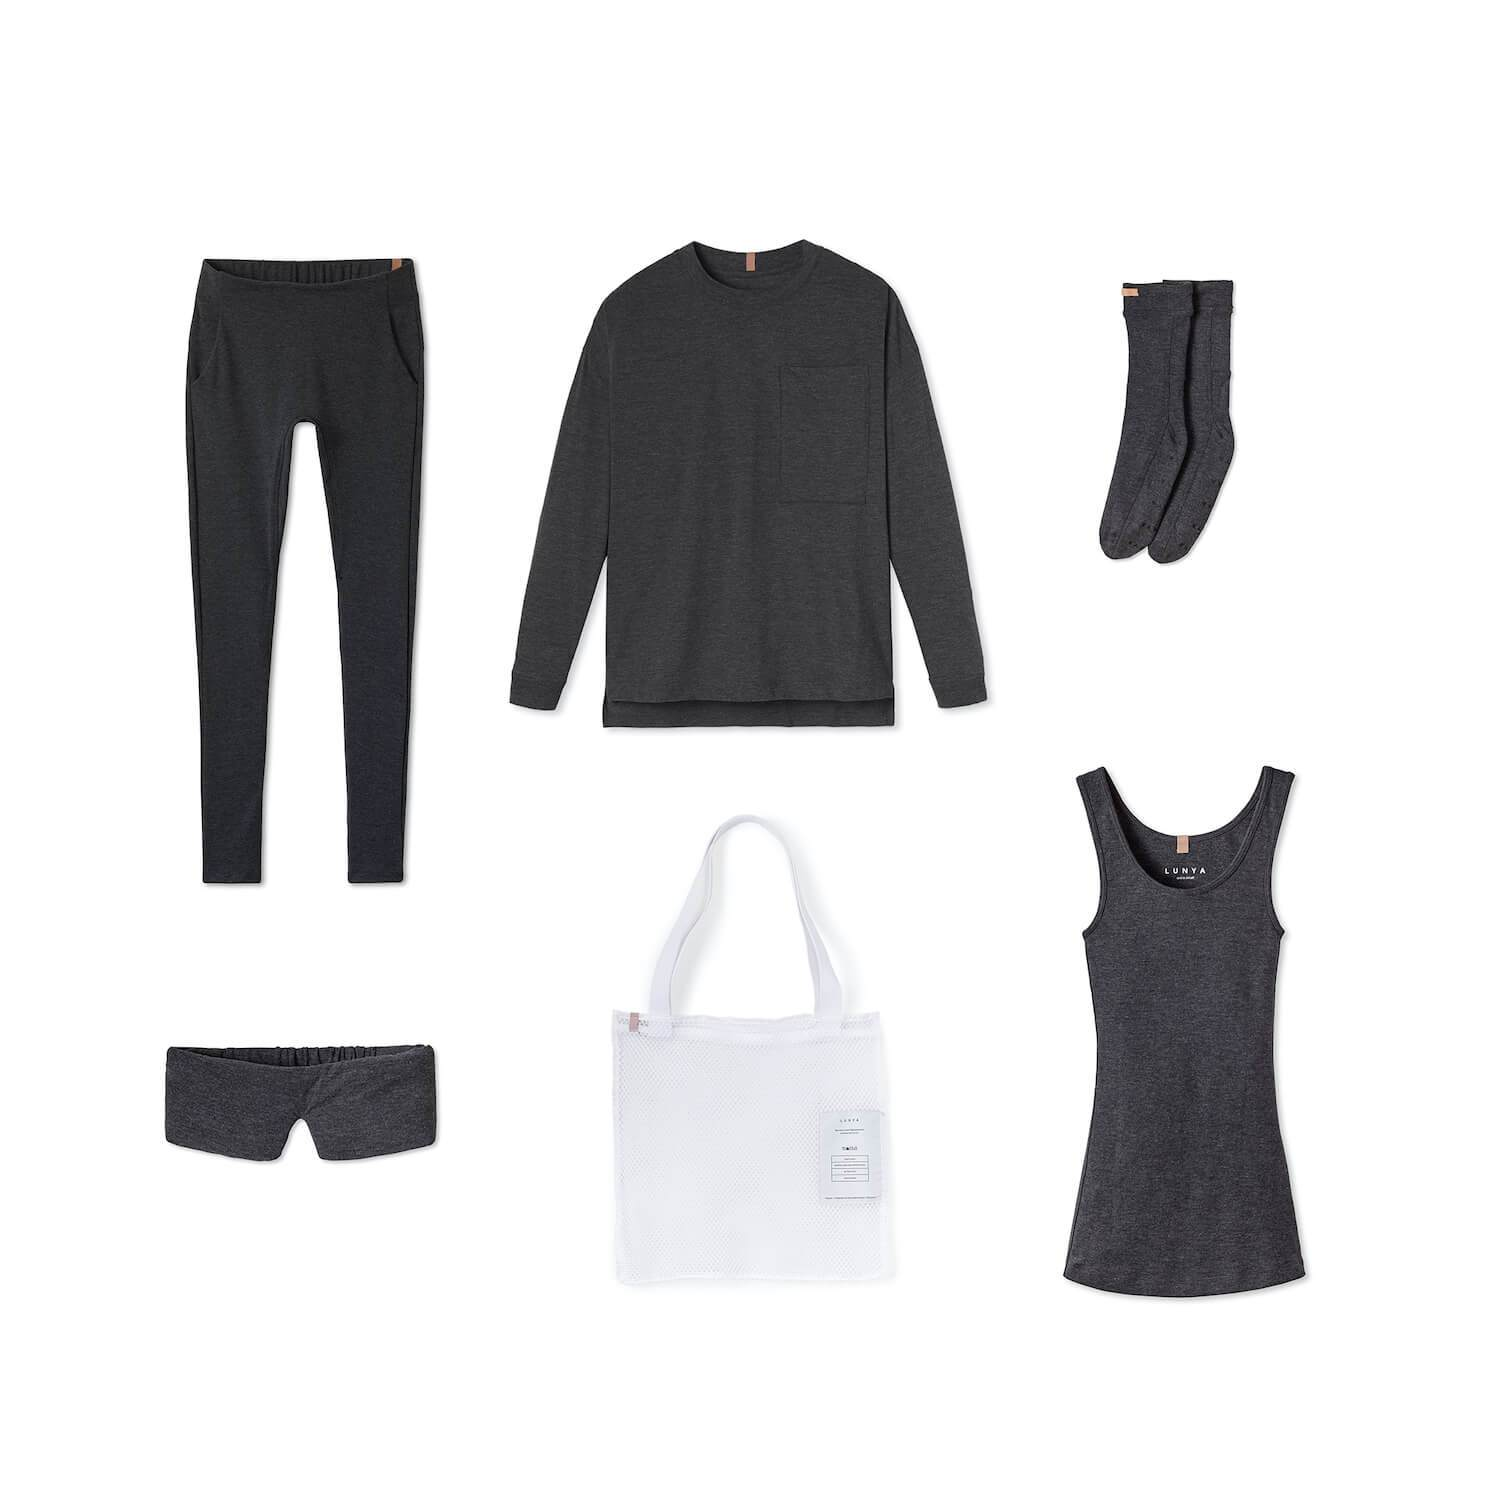 Lunya Sleepwear Restore Pima Travel Kit - #Charcoal